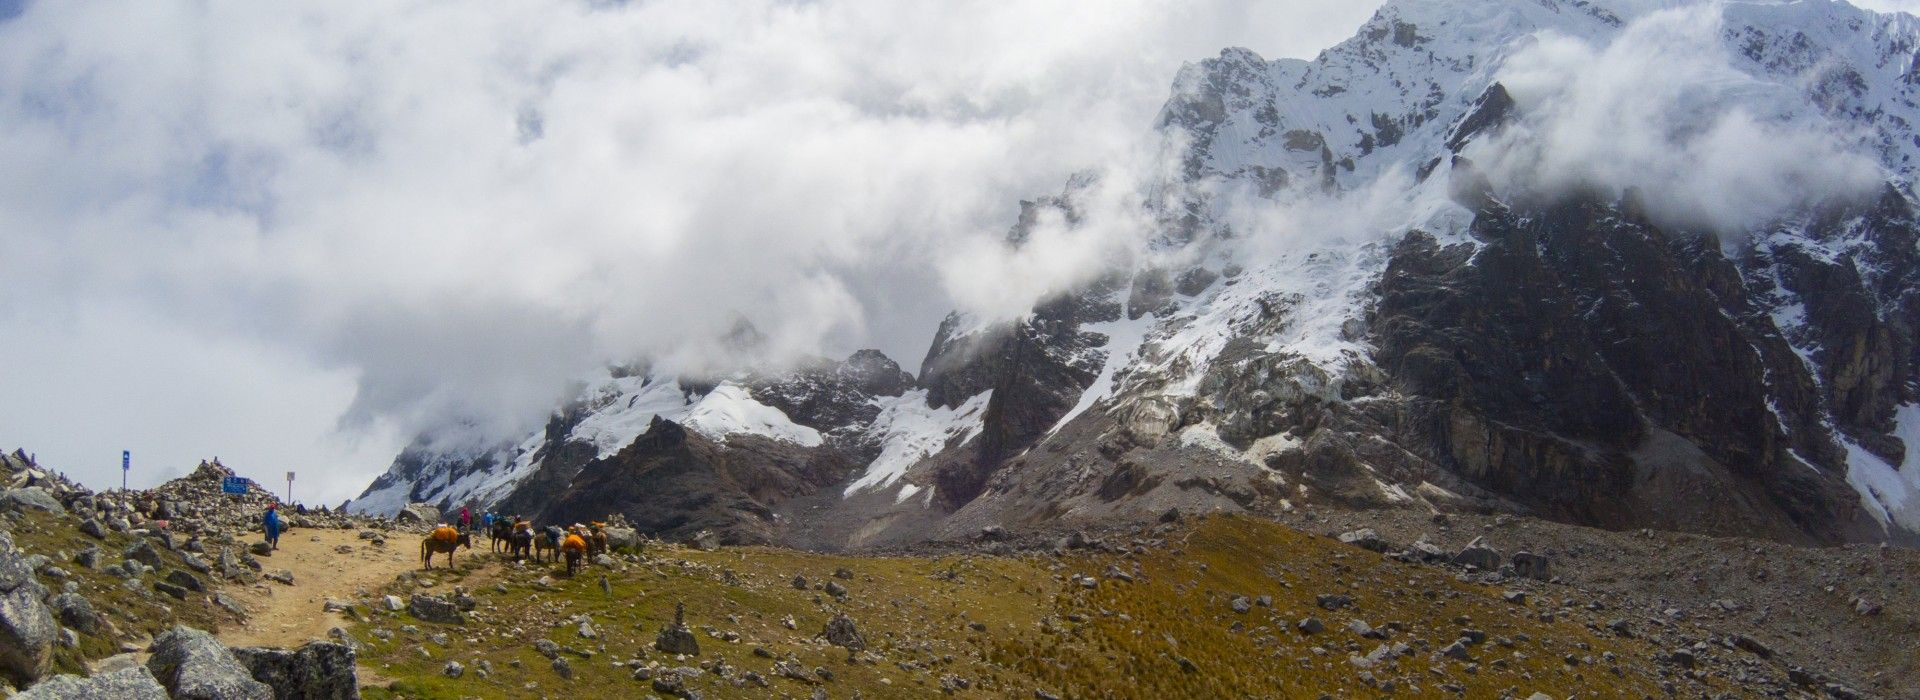 Wildlife, landscapes and nature Tours in Puno